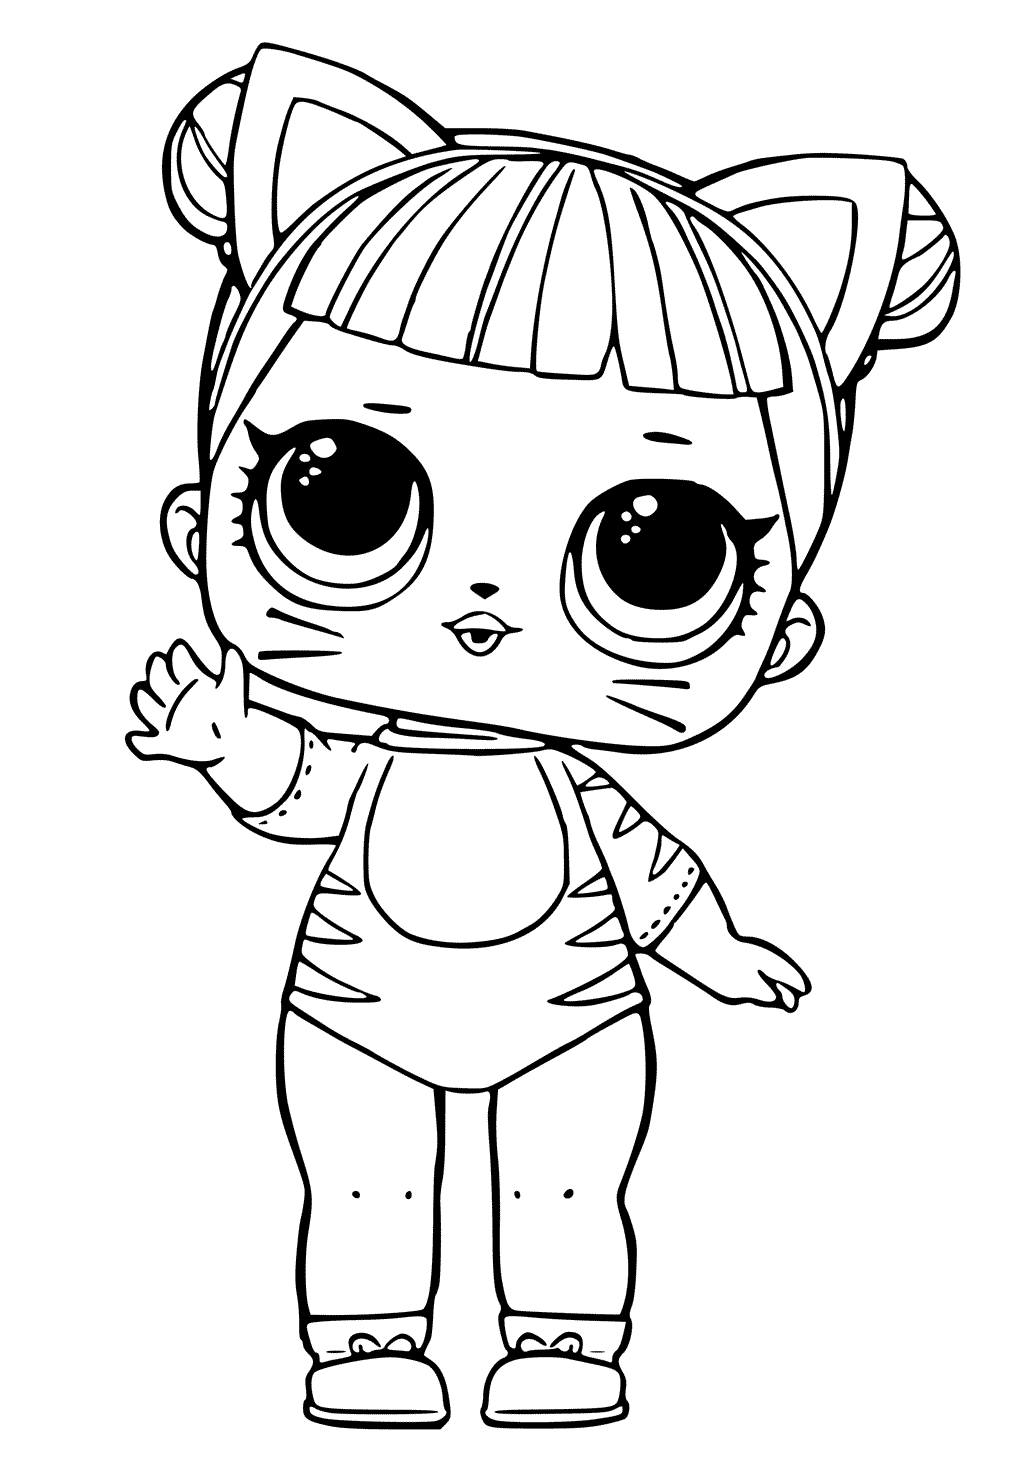 Baby Cat Lol Dolls Coloring Pages Baby Coloring Pages Kitty Coloring Cat Coloring Page